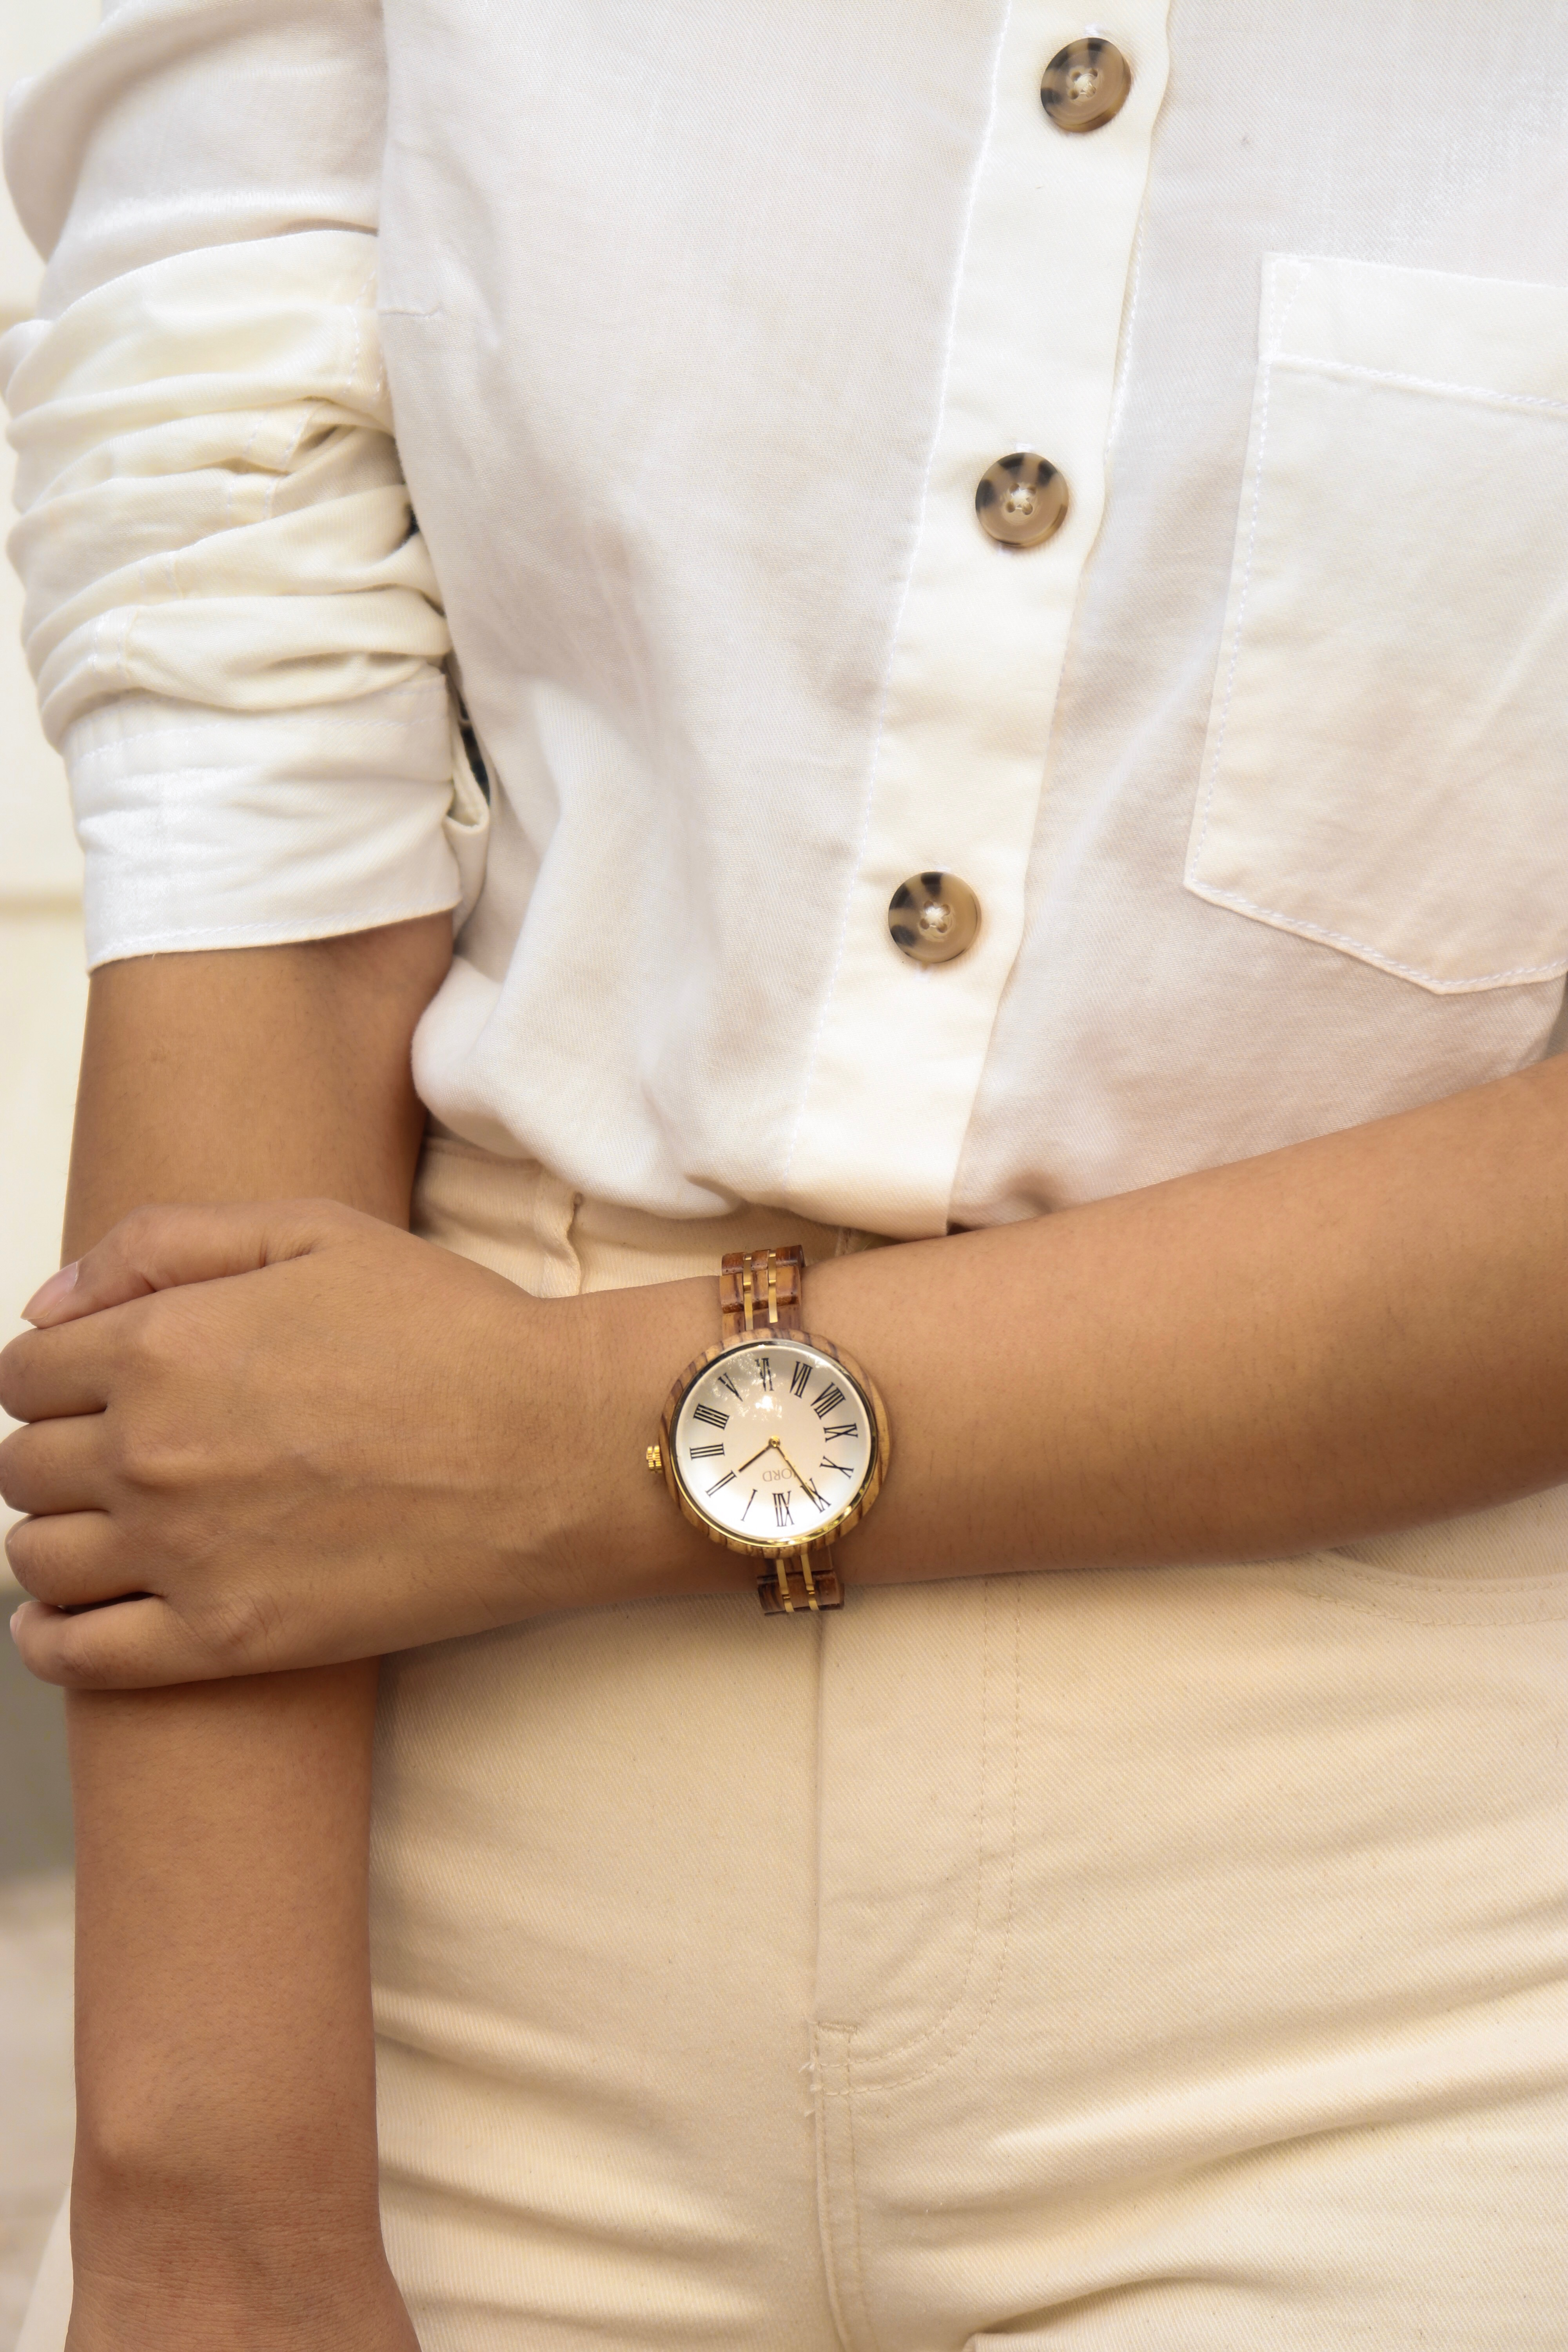 My Favorite Accessory A Watch by JORD - Prity Singh